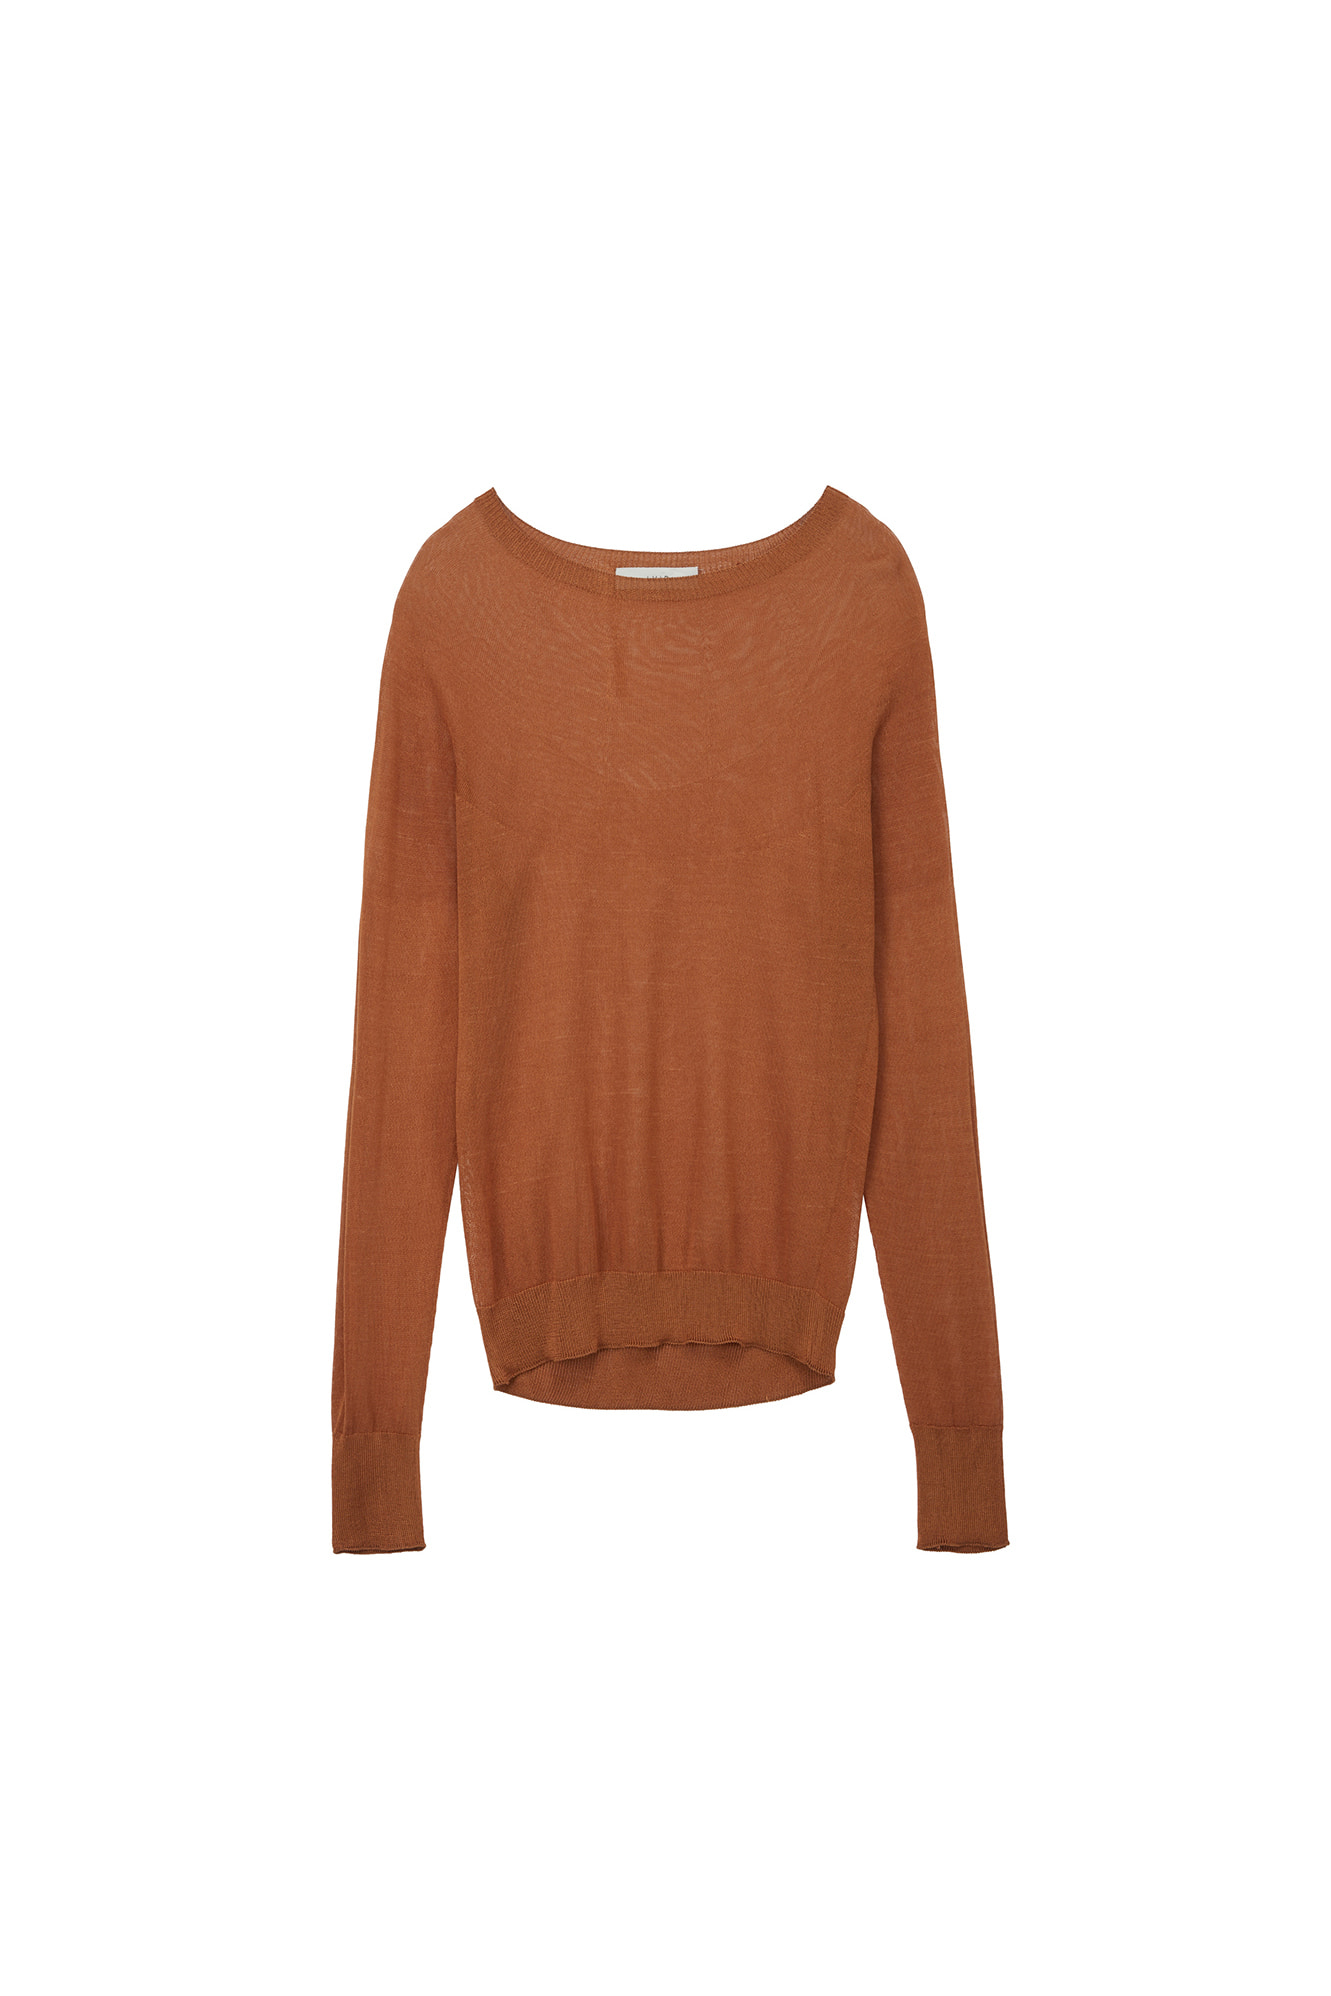 WHOLE GARMENT VISCOSE KNIT_DEEP ORANGE